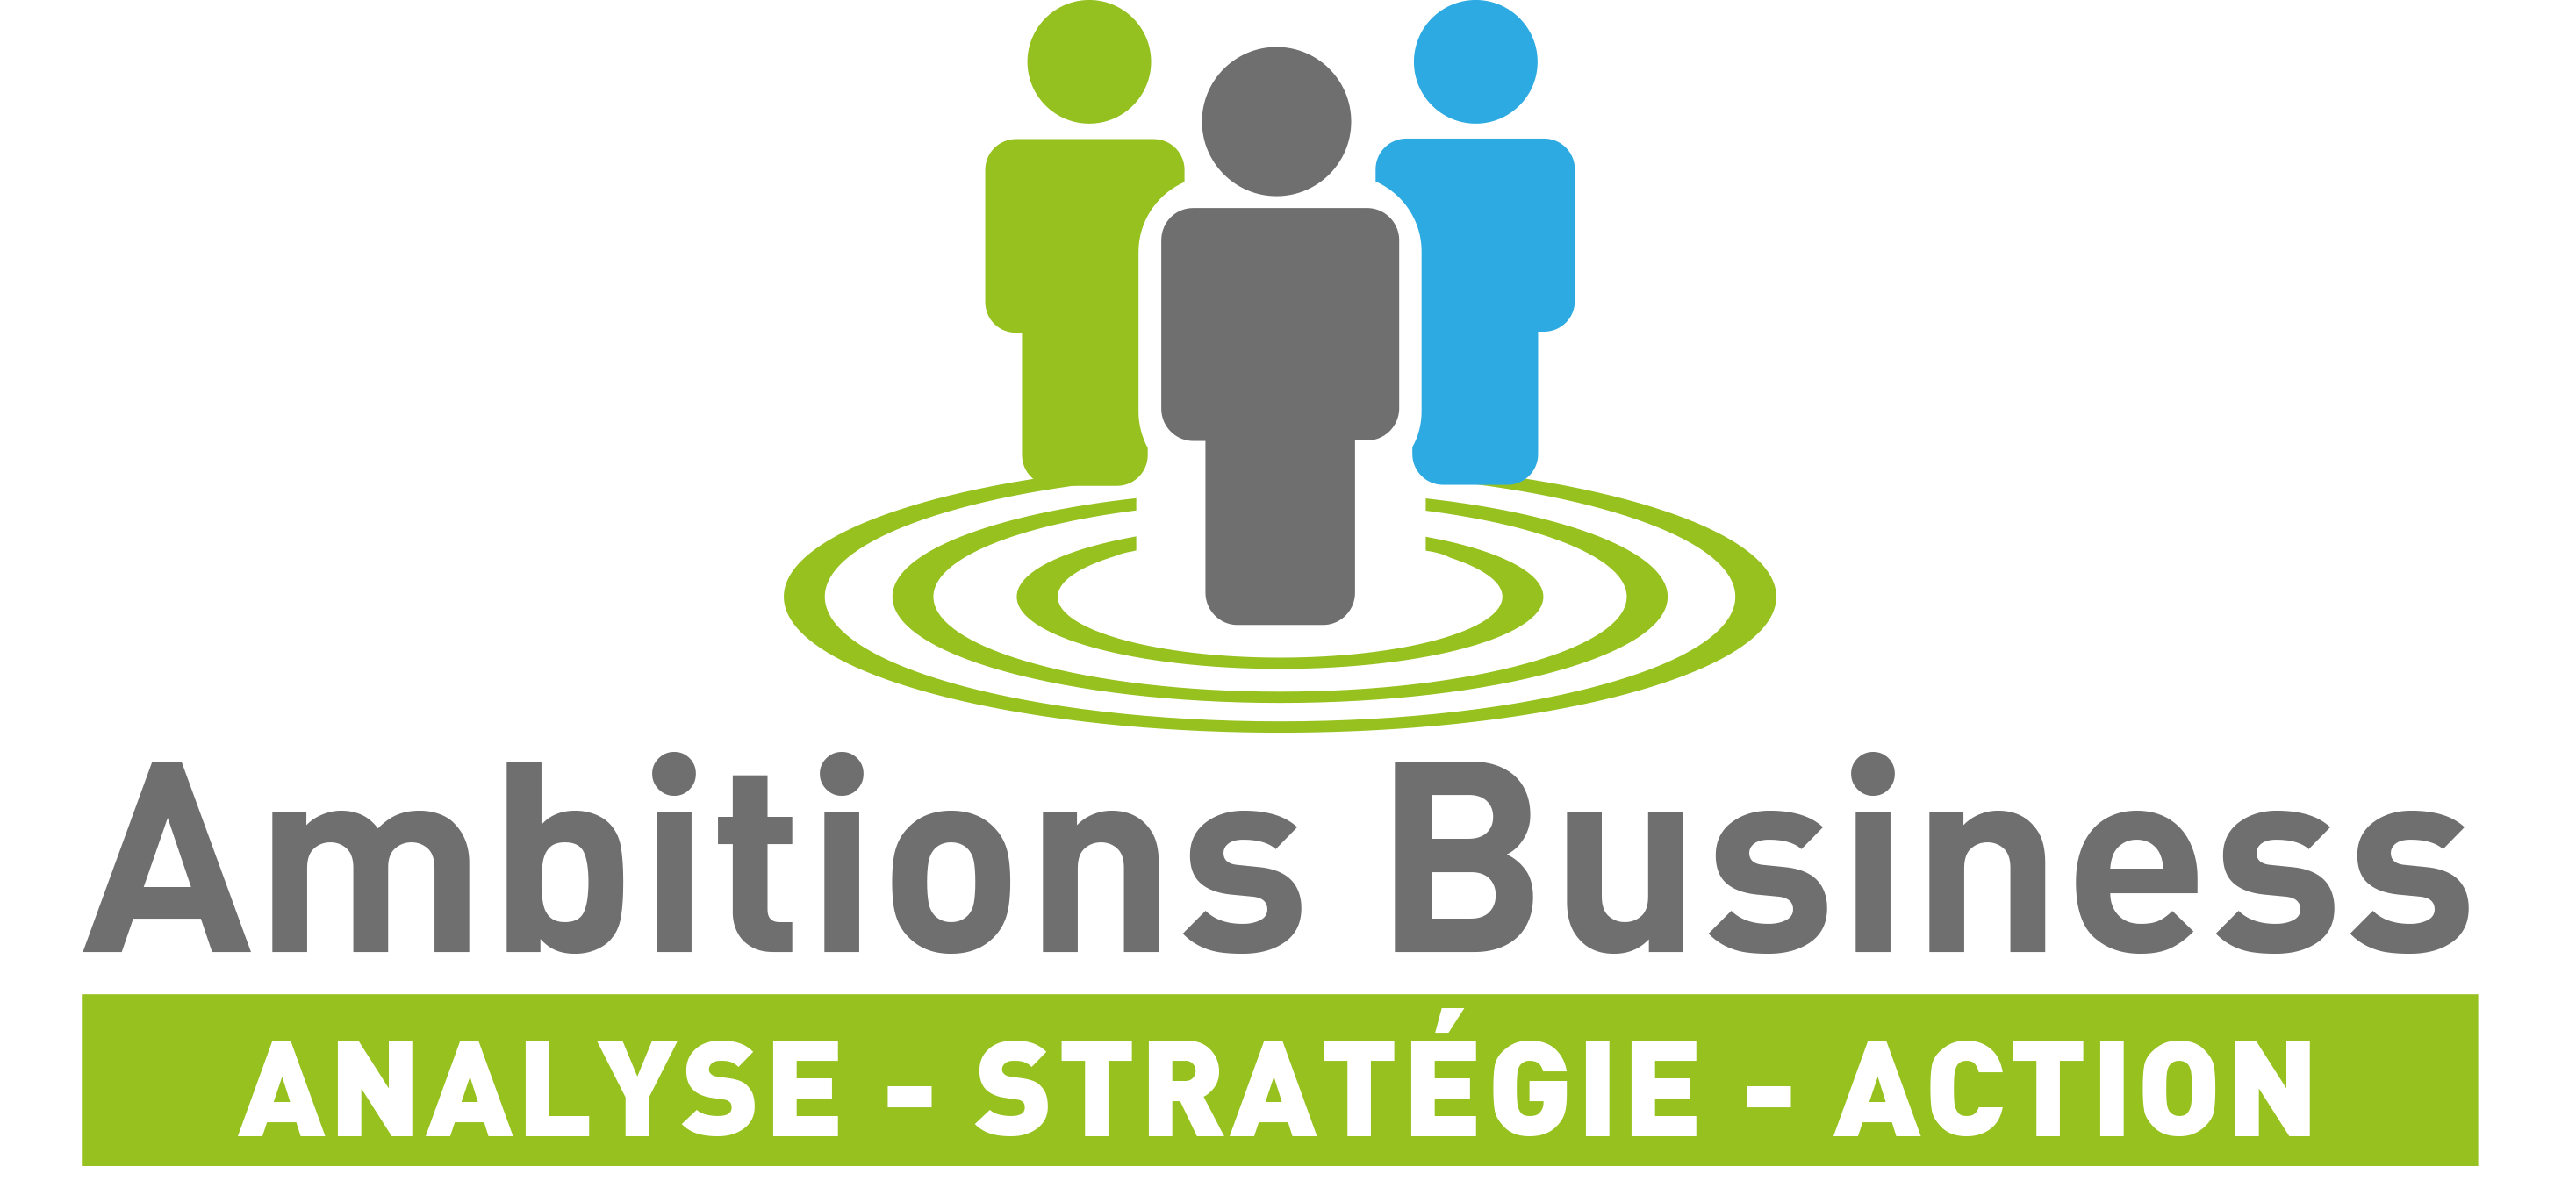 Ambitions Business